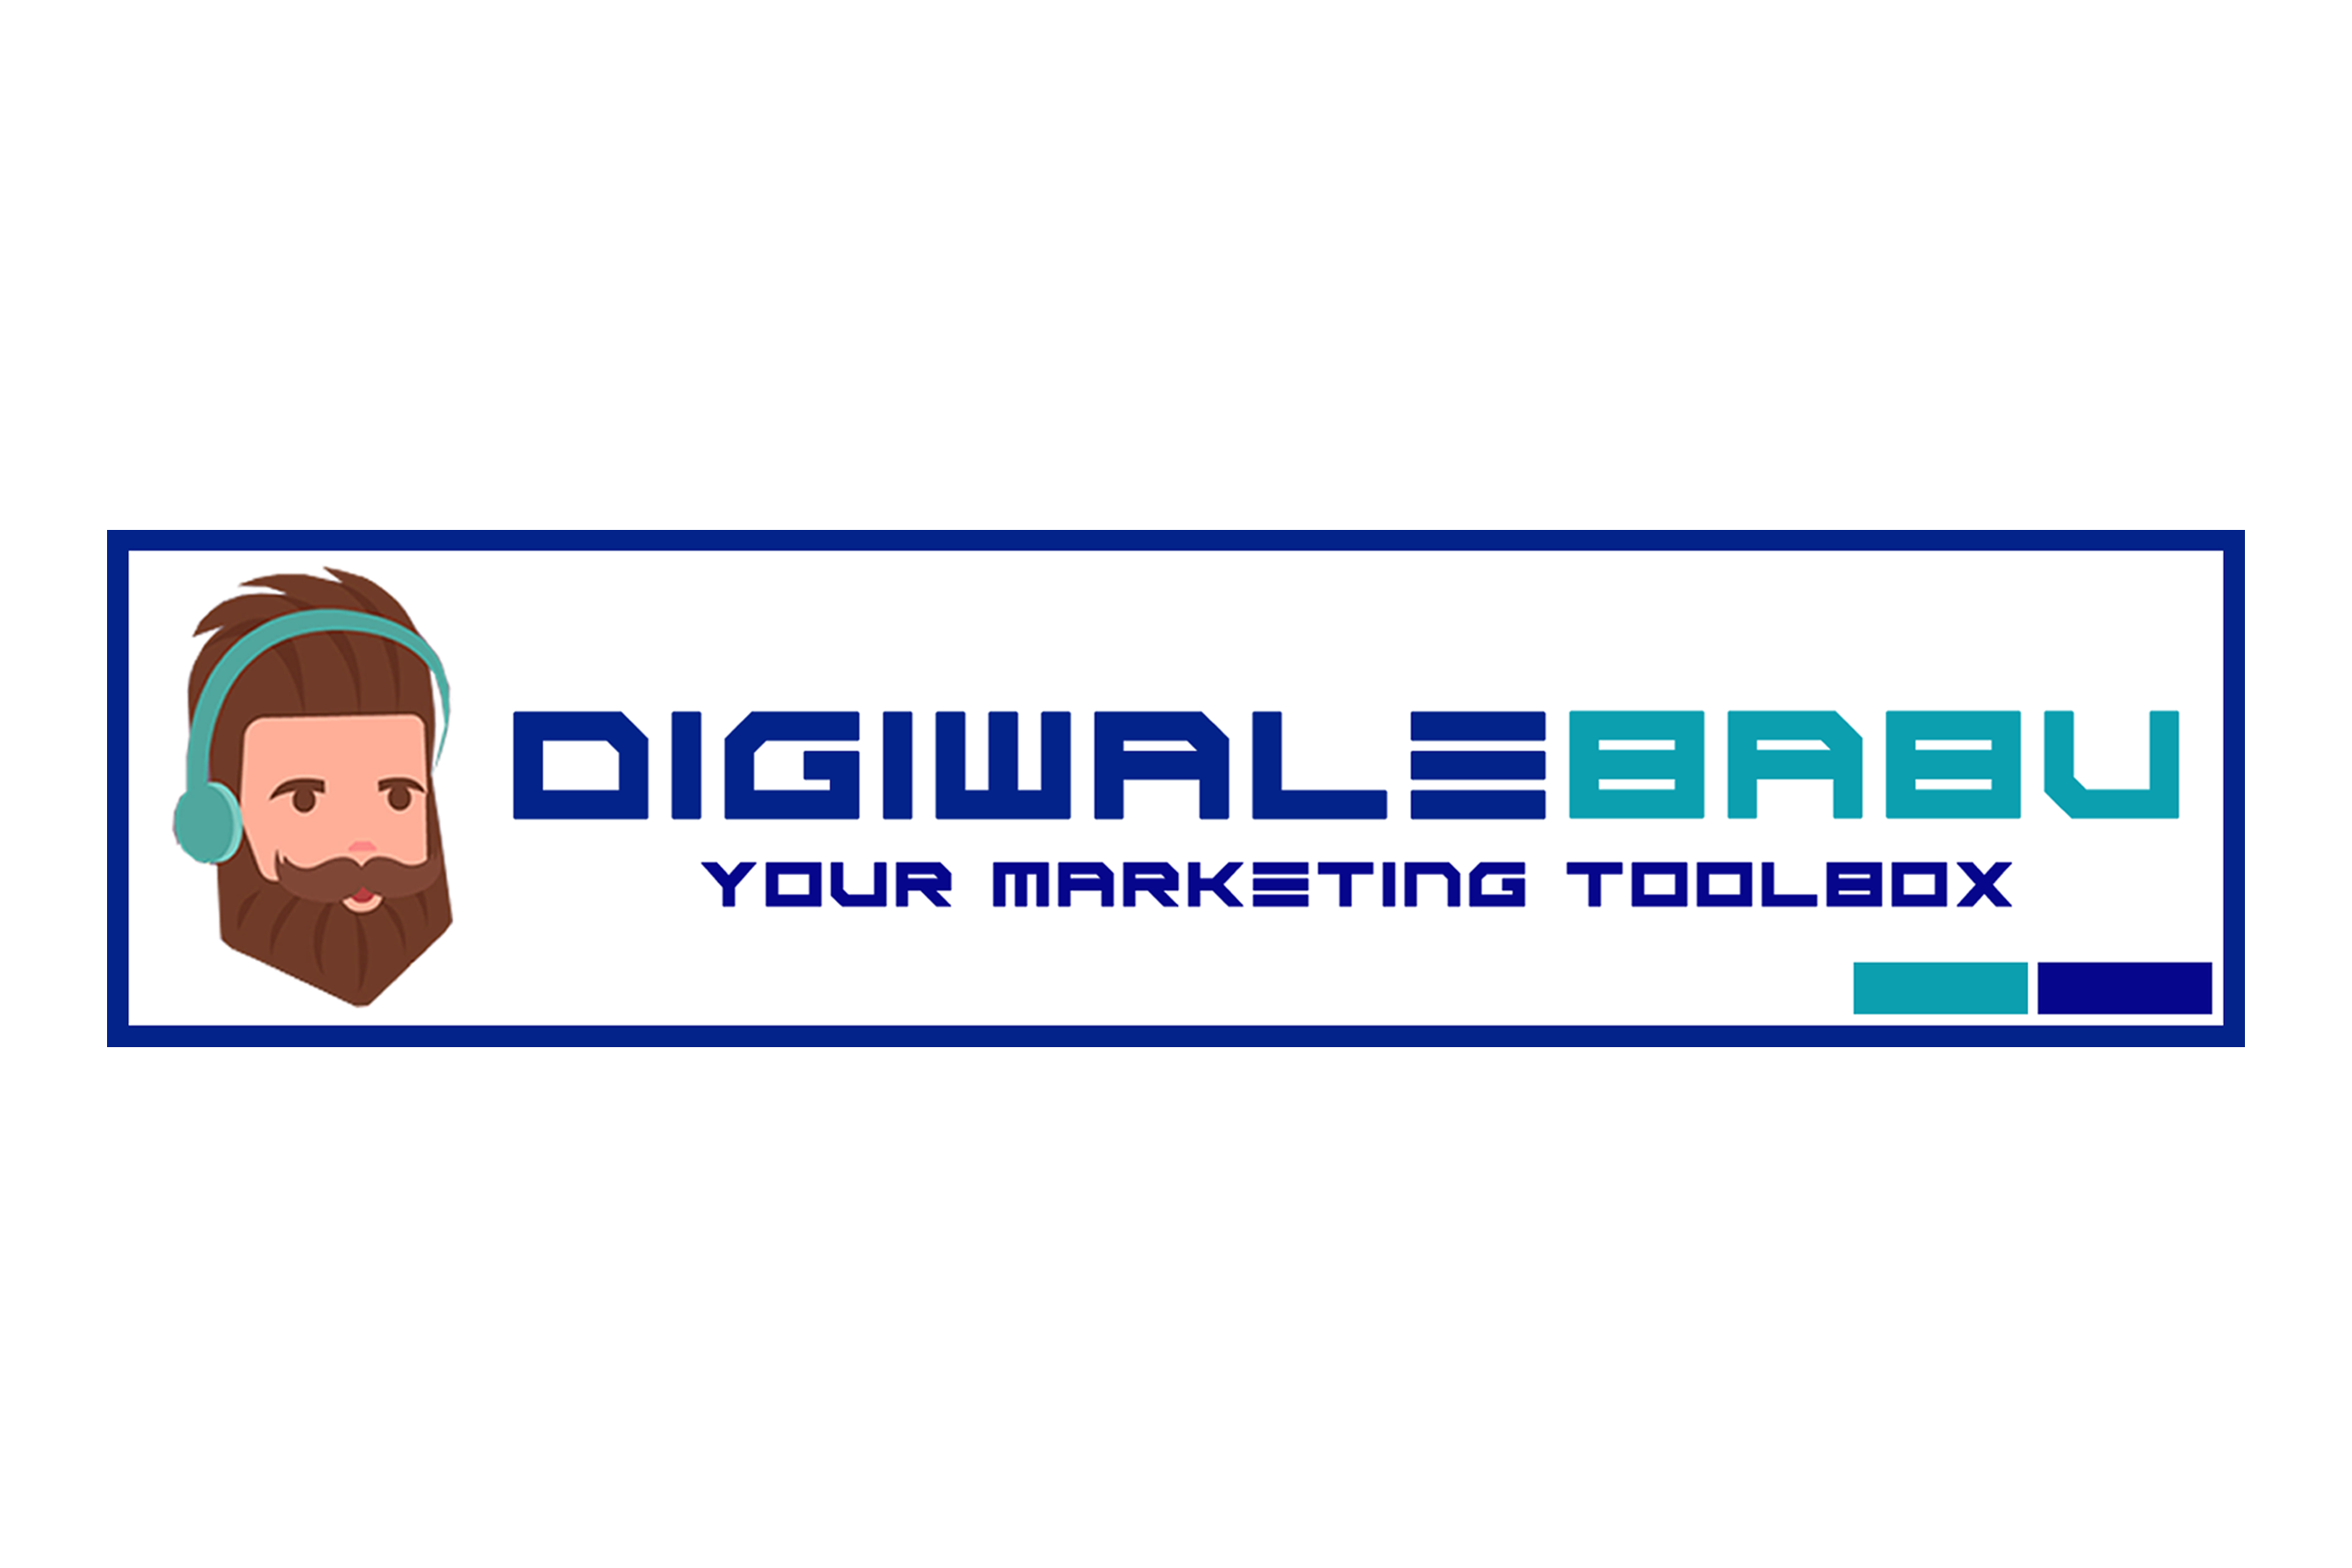 Digiwalebabu- Digital Marketing Company in Bihar